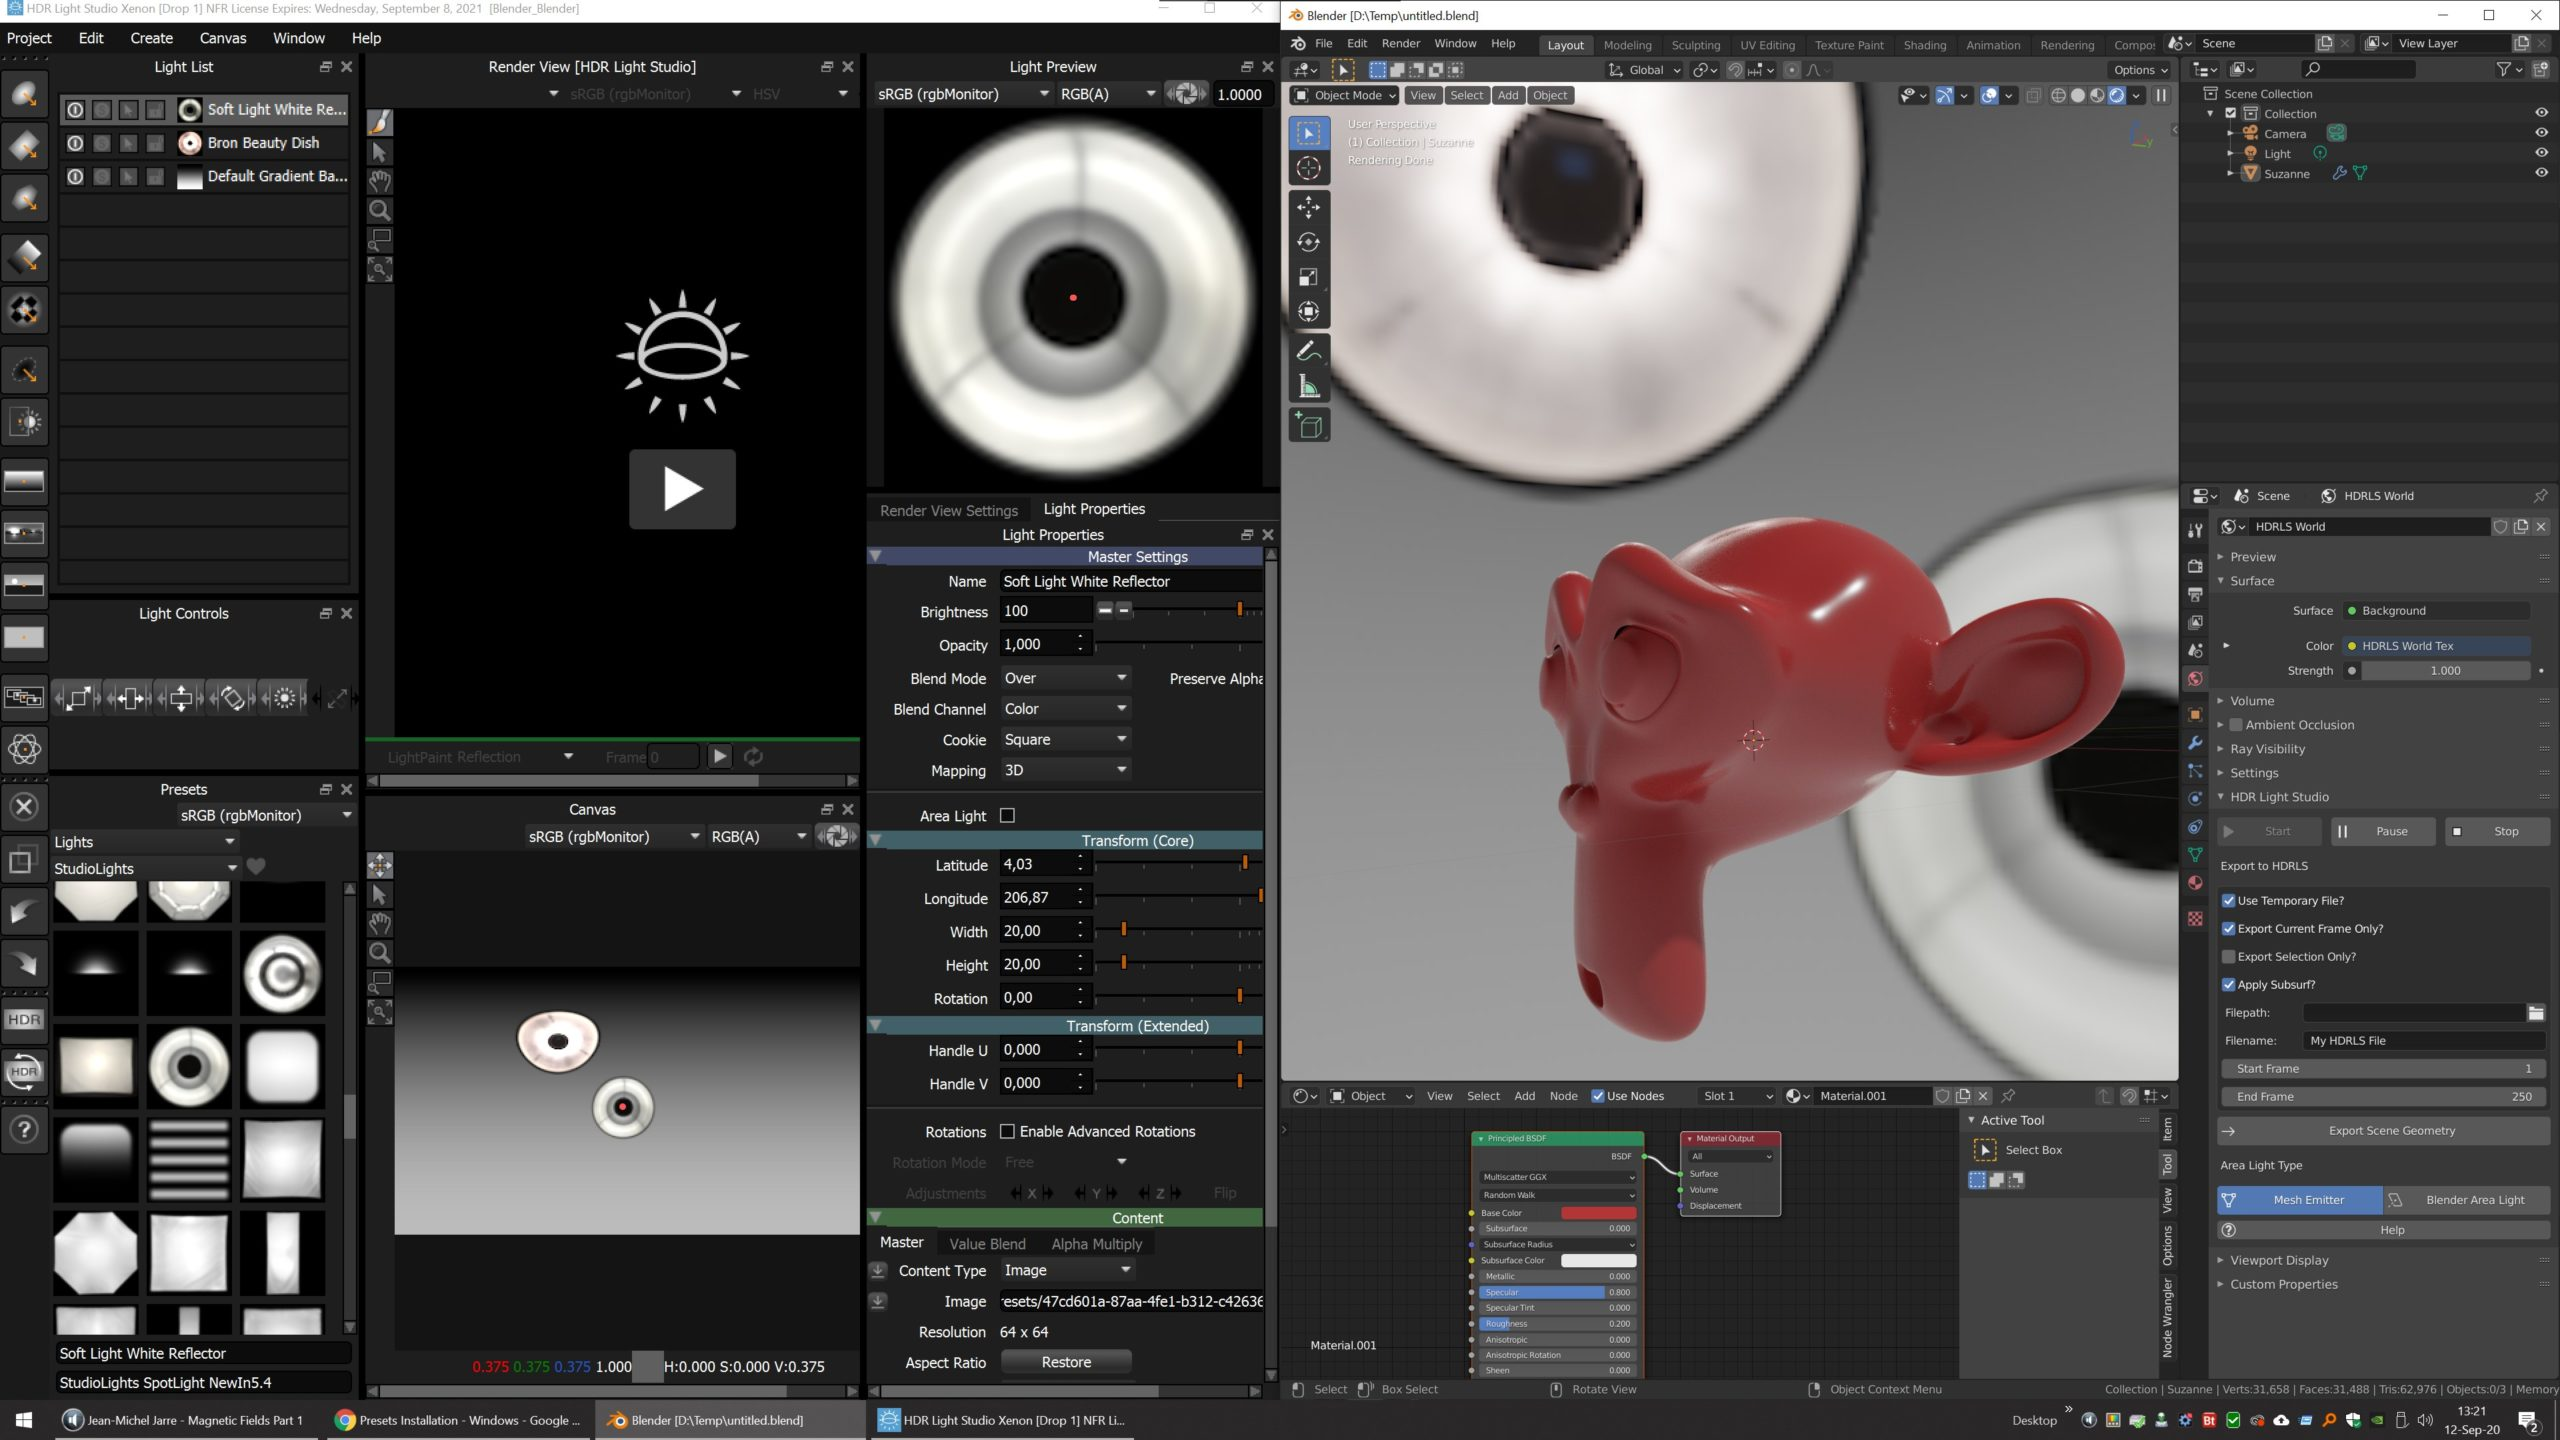 HDR Light Studio seamlessly connects to your Blender scene